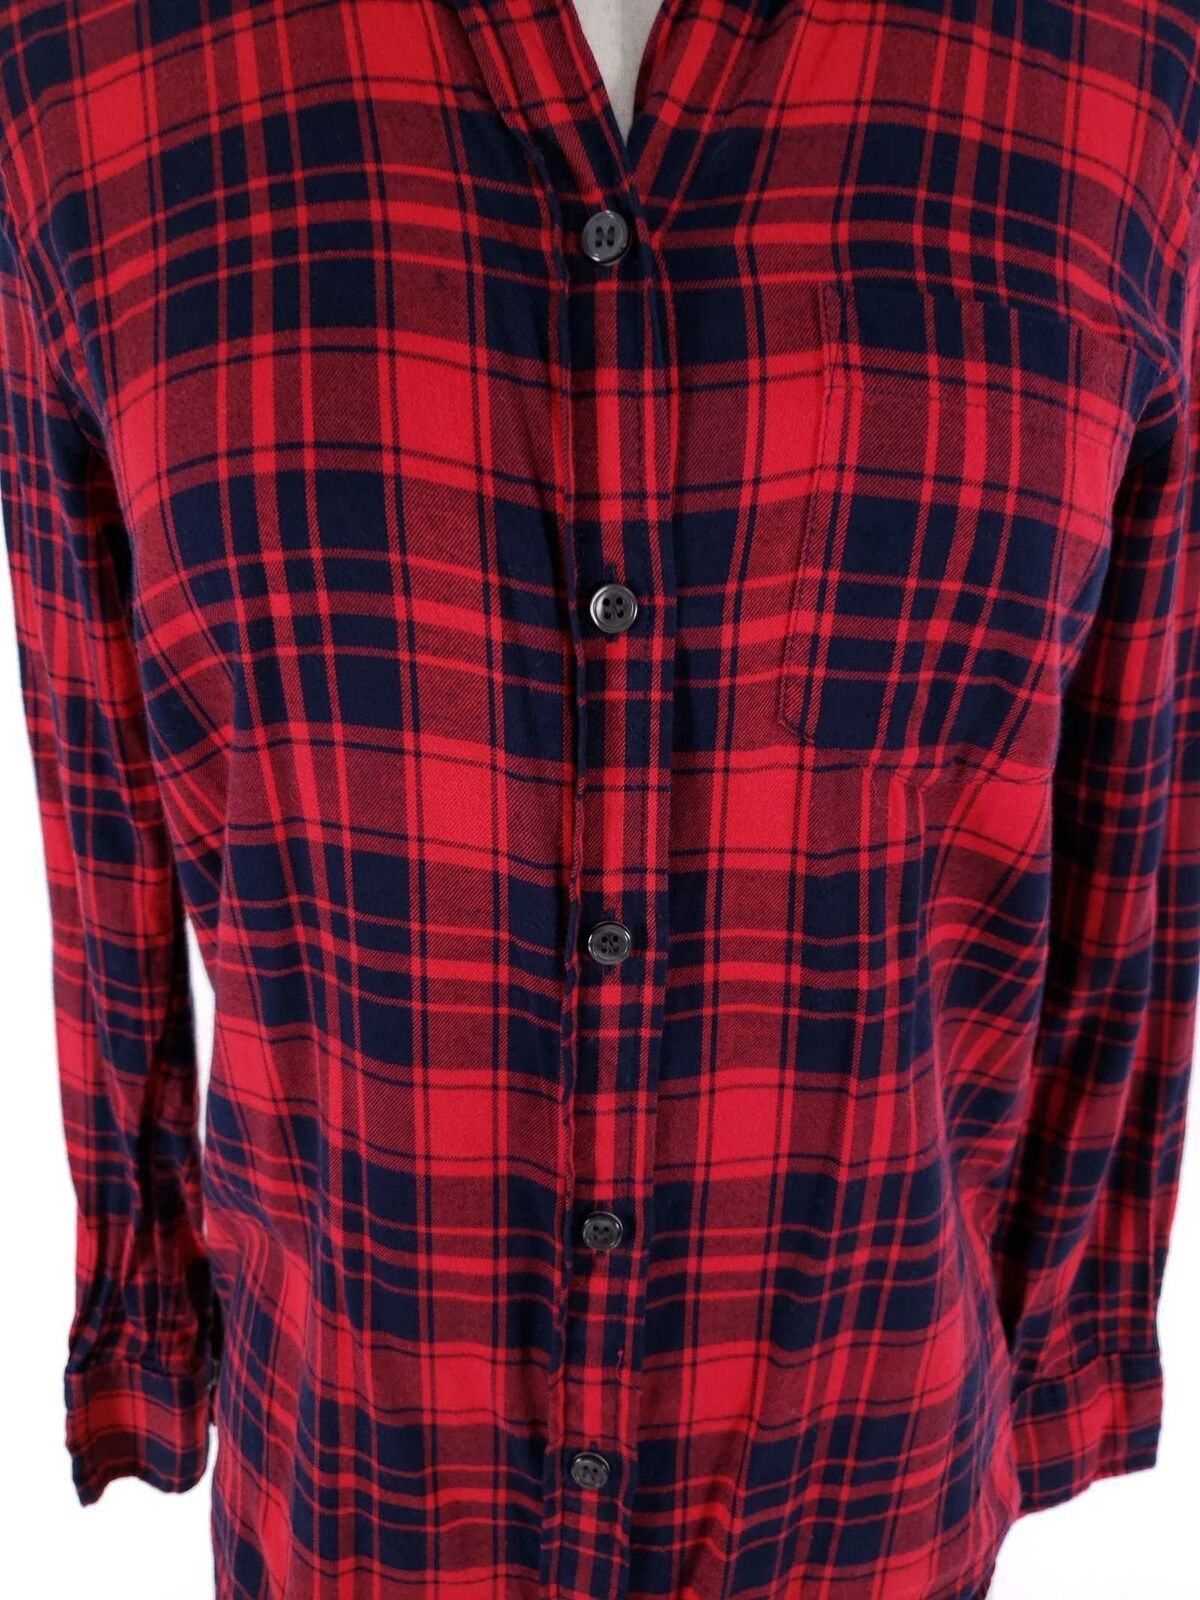 J.Crew Women Top XXS Flannel Shirt Boy Fit Soft Button Front Loose Fit image 2